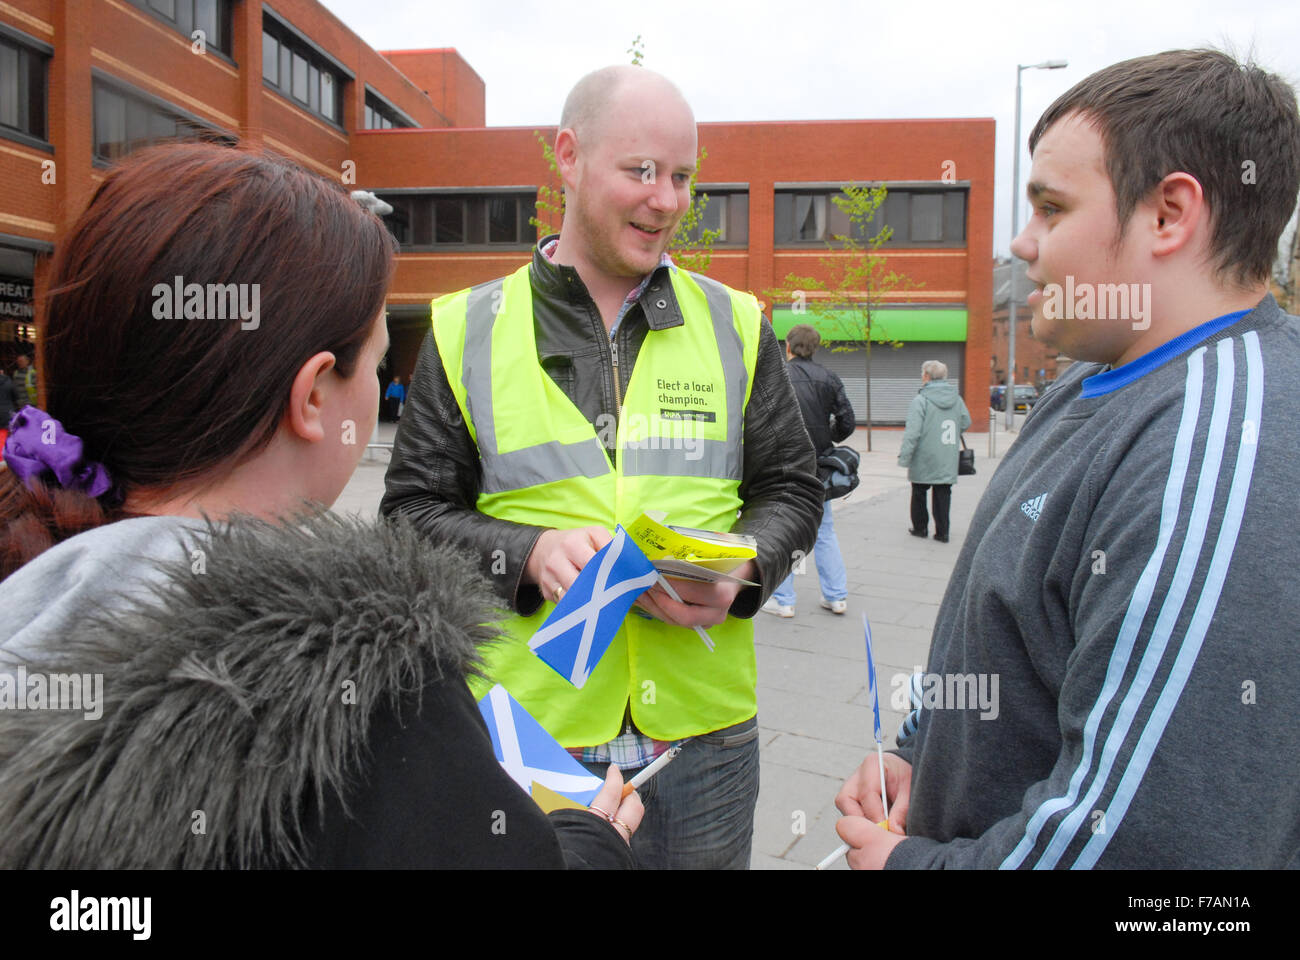 Scottish National Party (SNP) activists speak to voters in Glasgow. - Stock Image